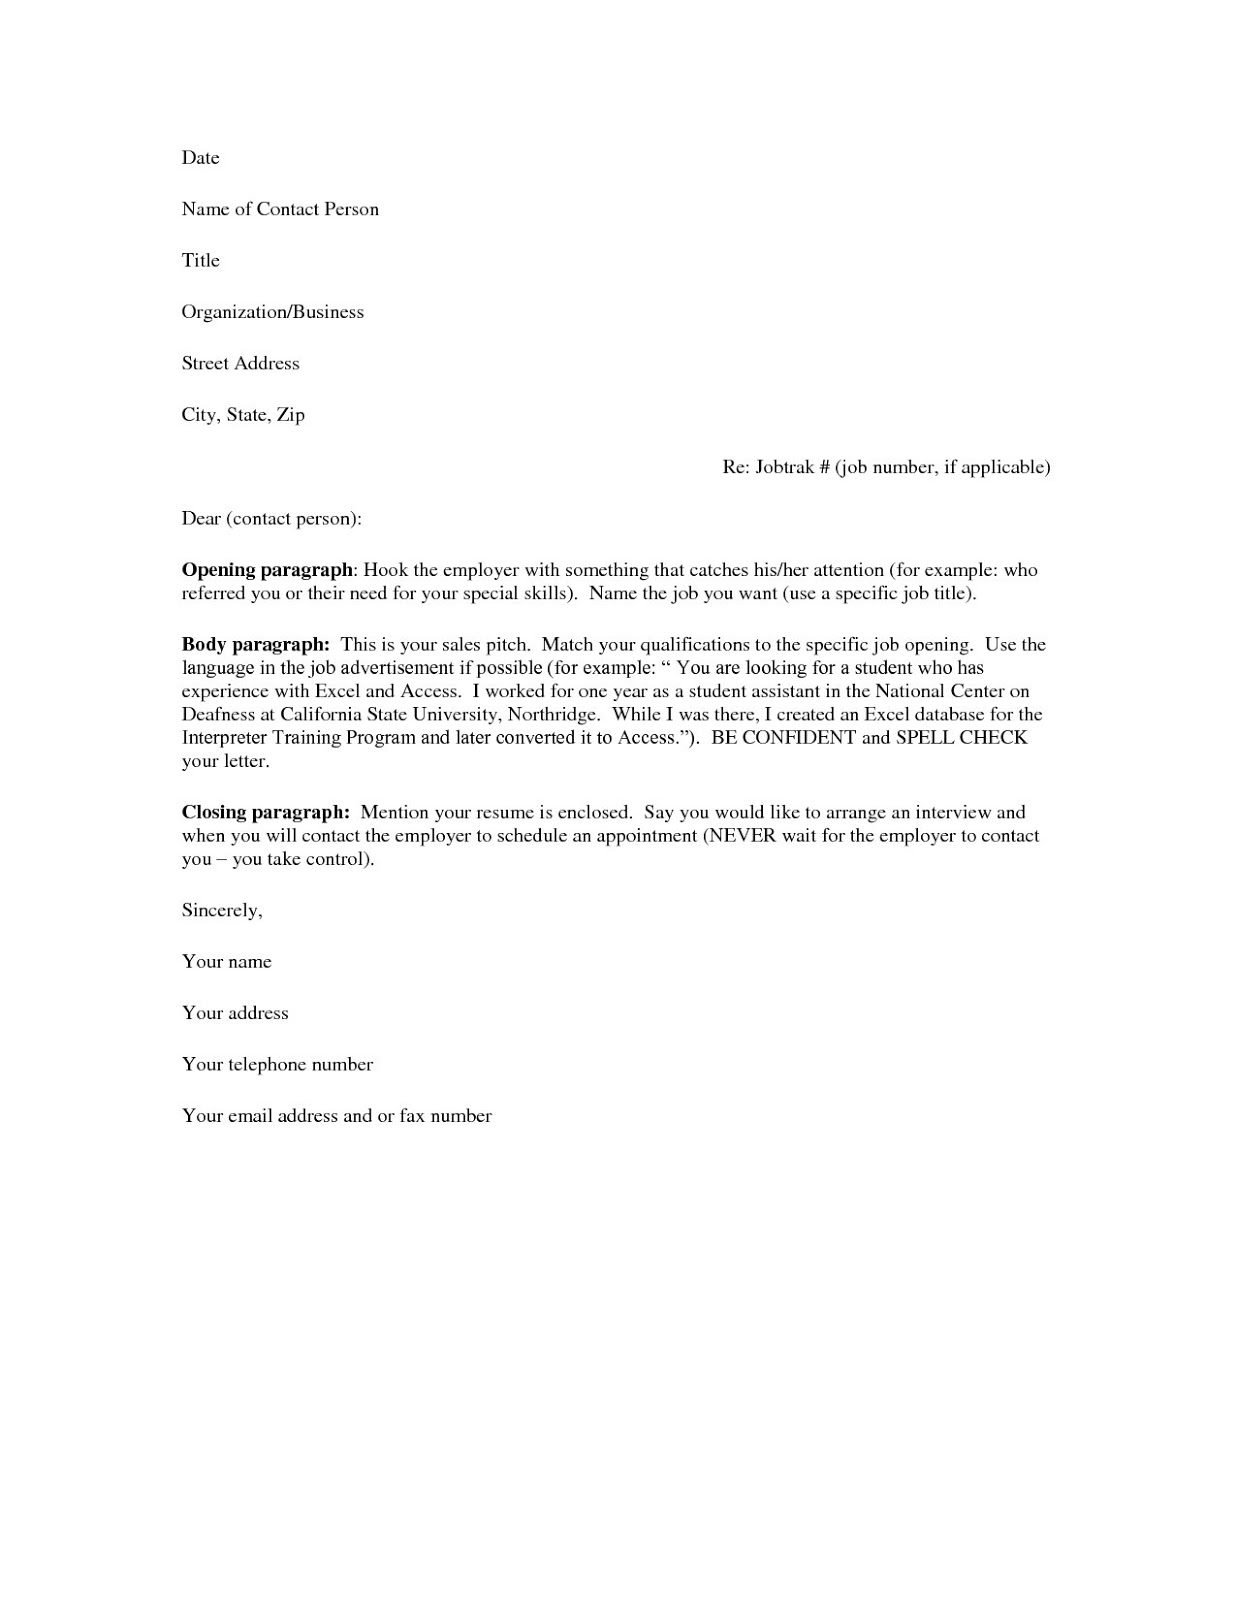 help me write my cover letter cover letter for job sample cover letters samples